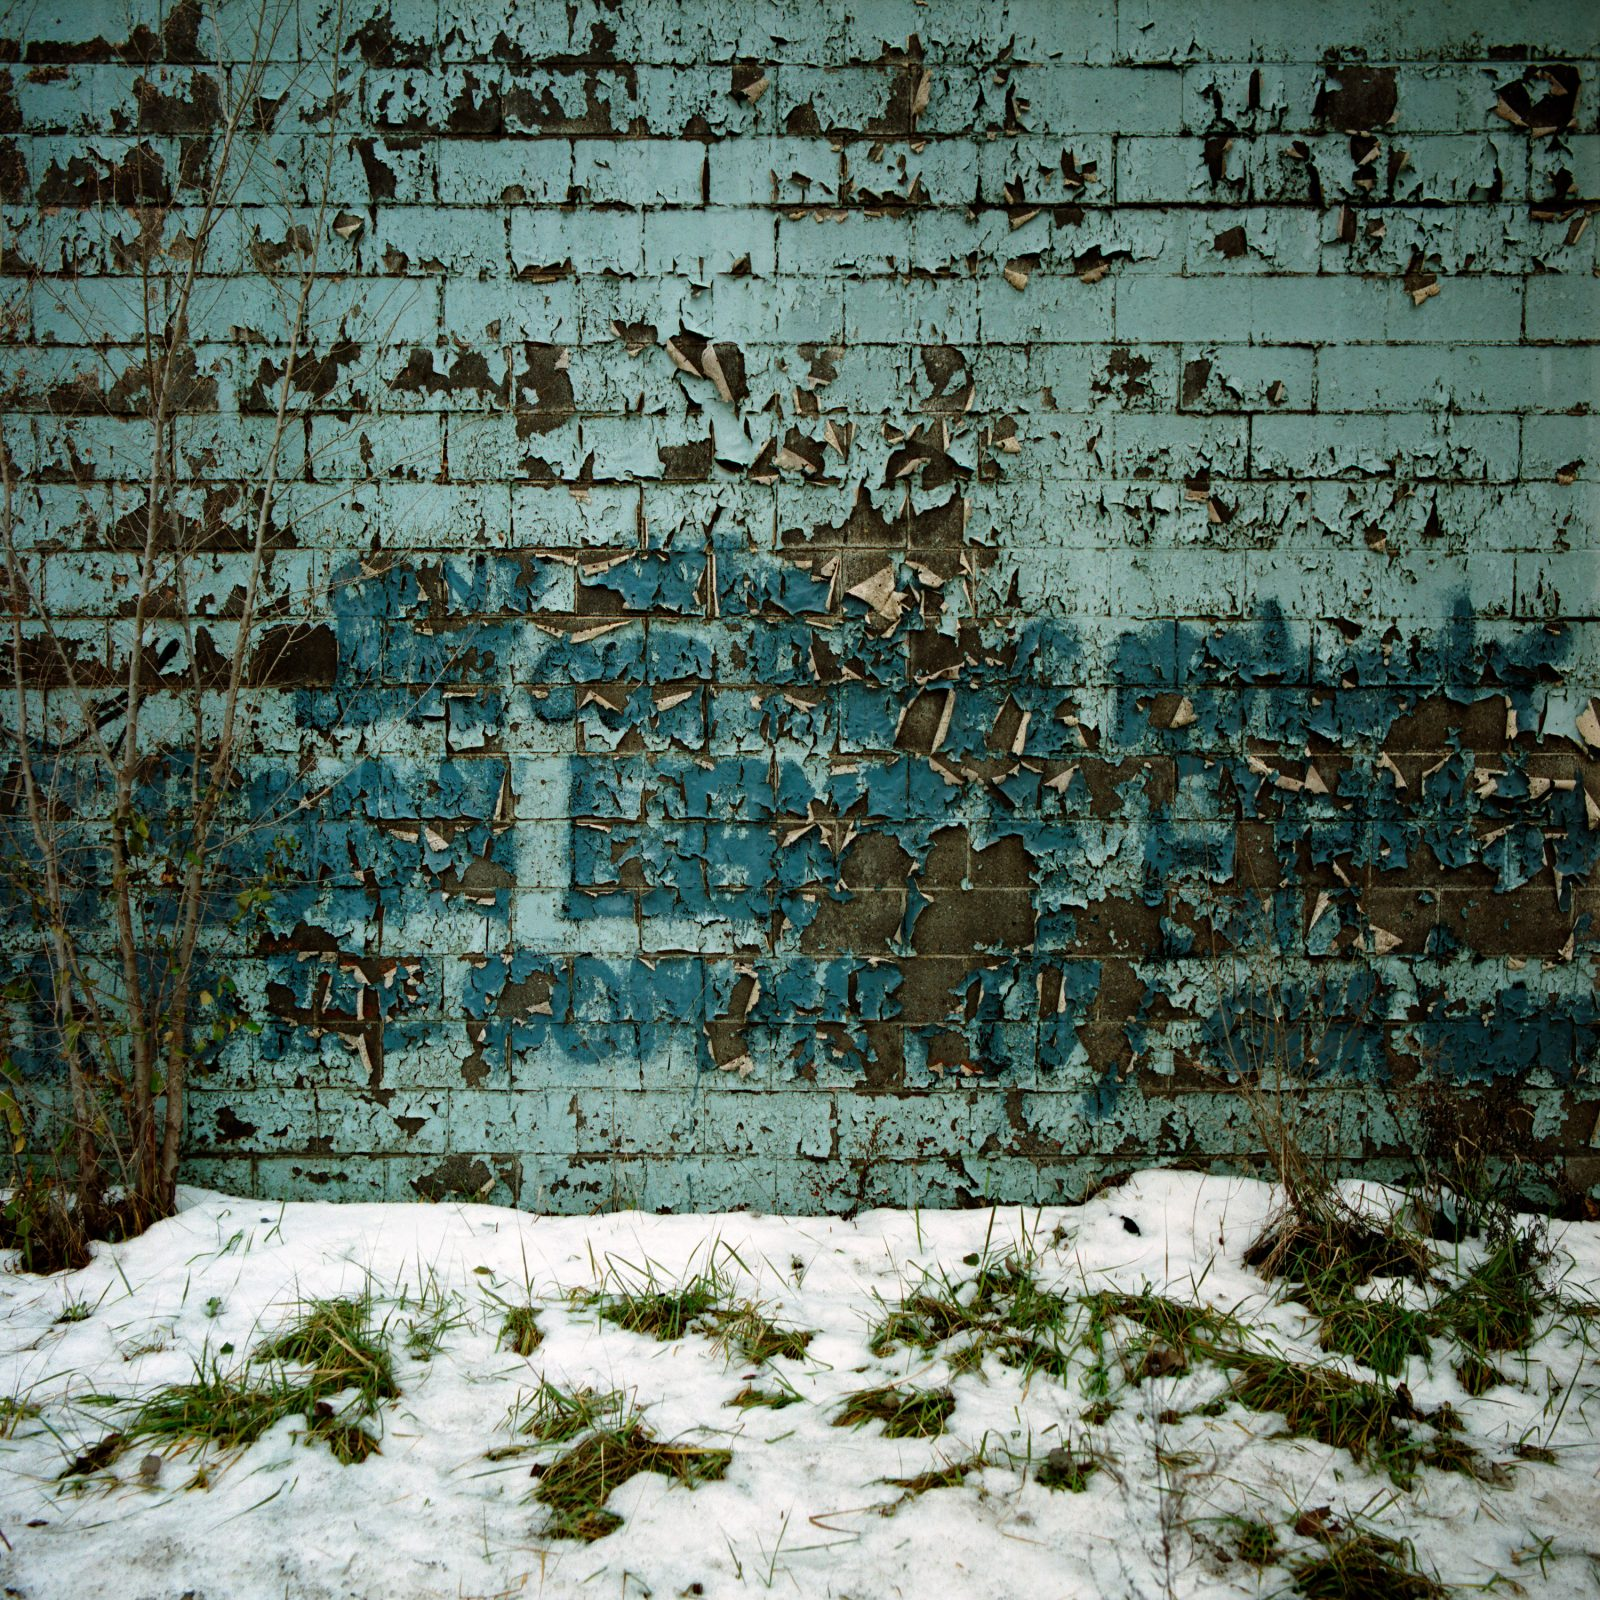 Peeling paint on a wall. Detroit, Michigan.